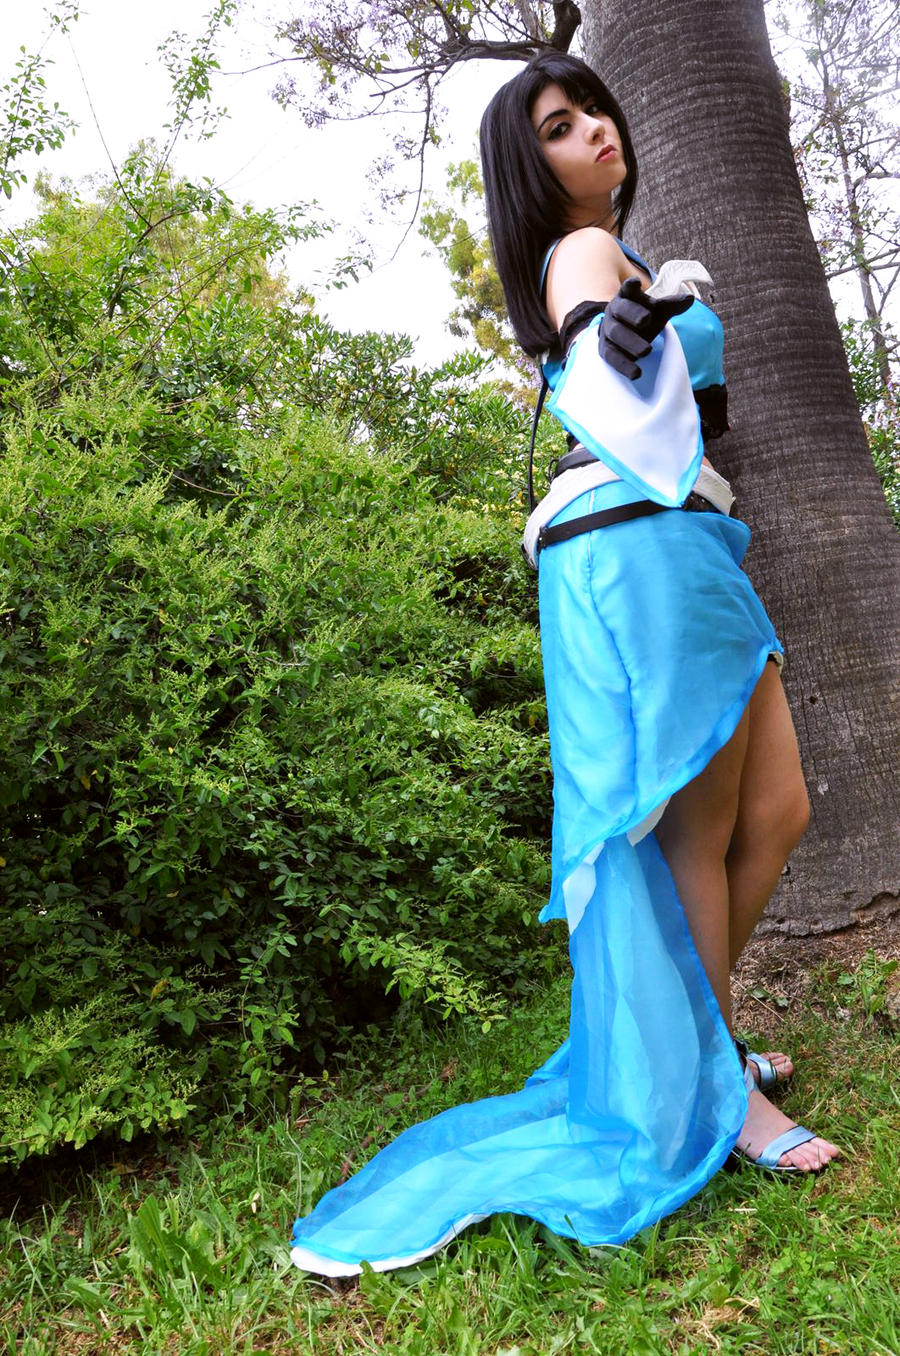 Rinoa LightBlue Dress Monty Oum design Inspired by PrincessRiN0a